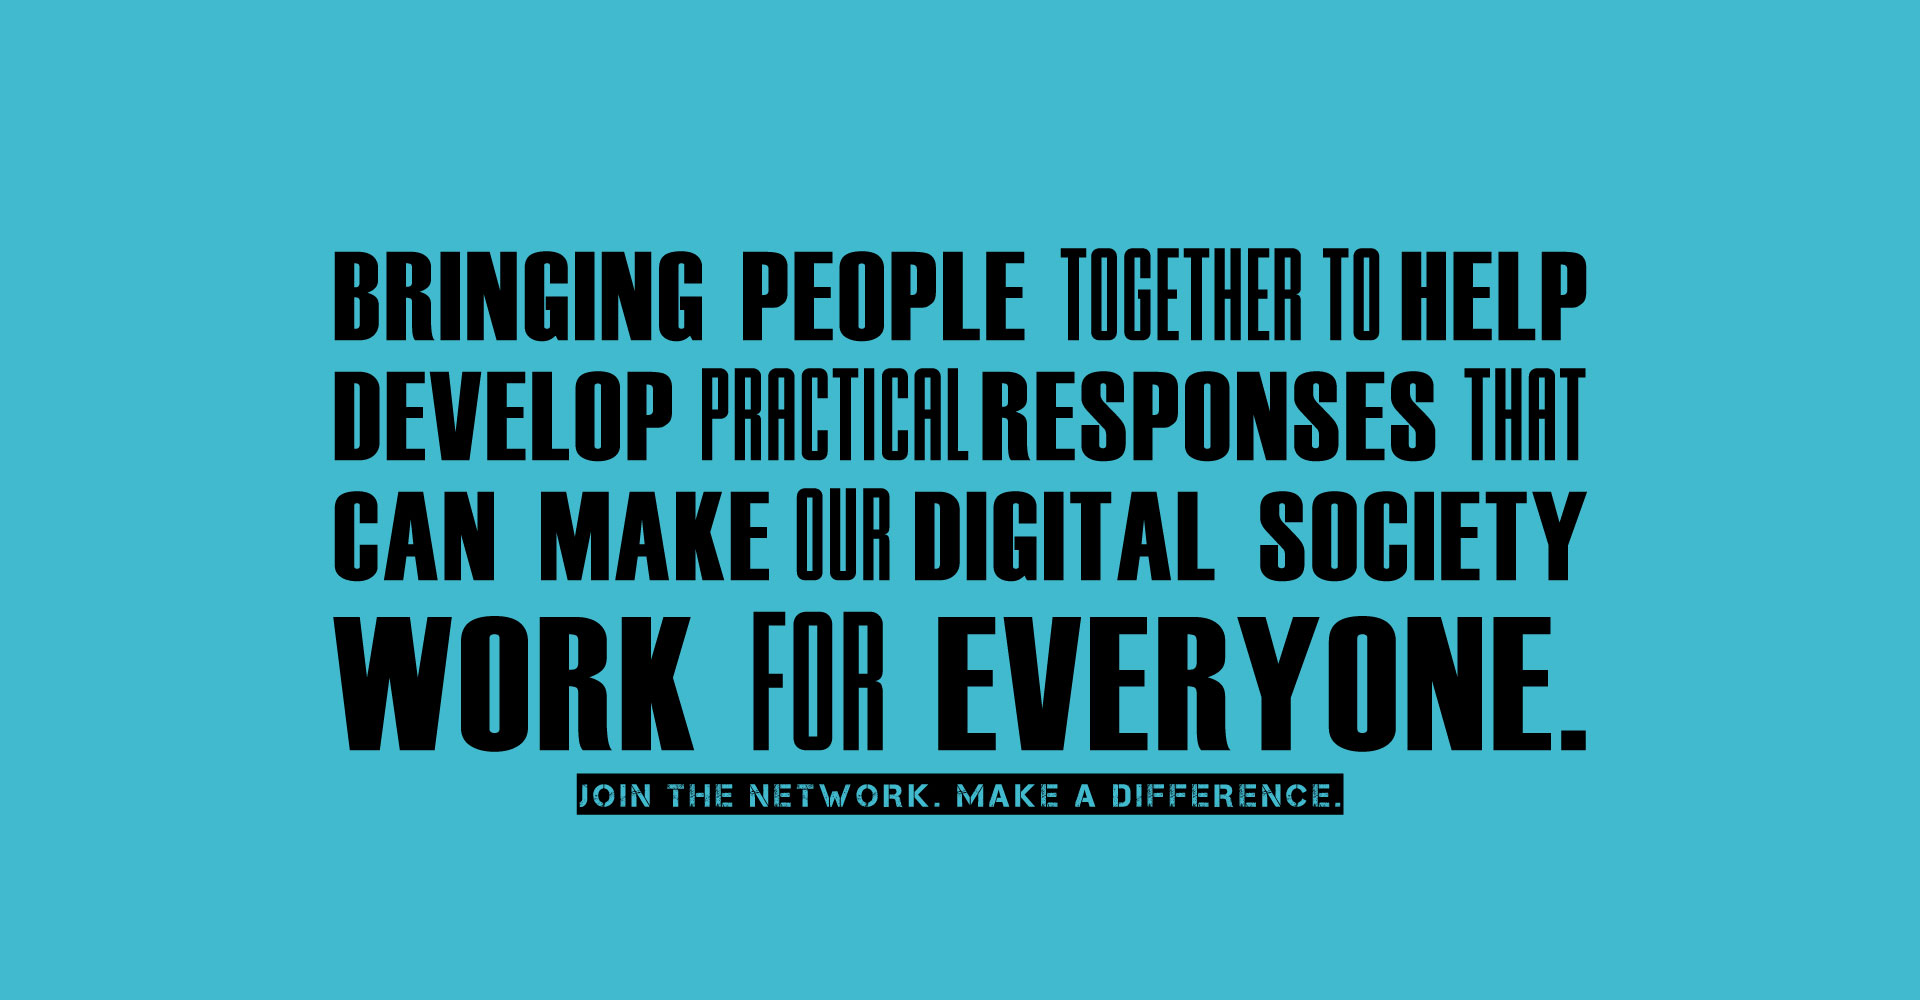 Bringing people together to help develop practical responses that can make our digital society work for everyone. Join the Network. Make a difference.